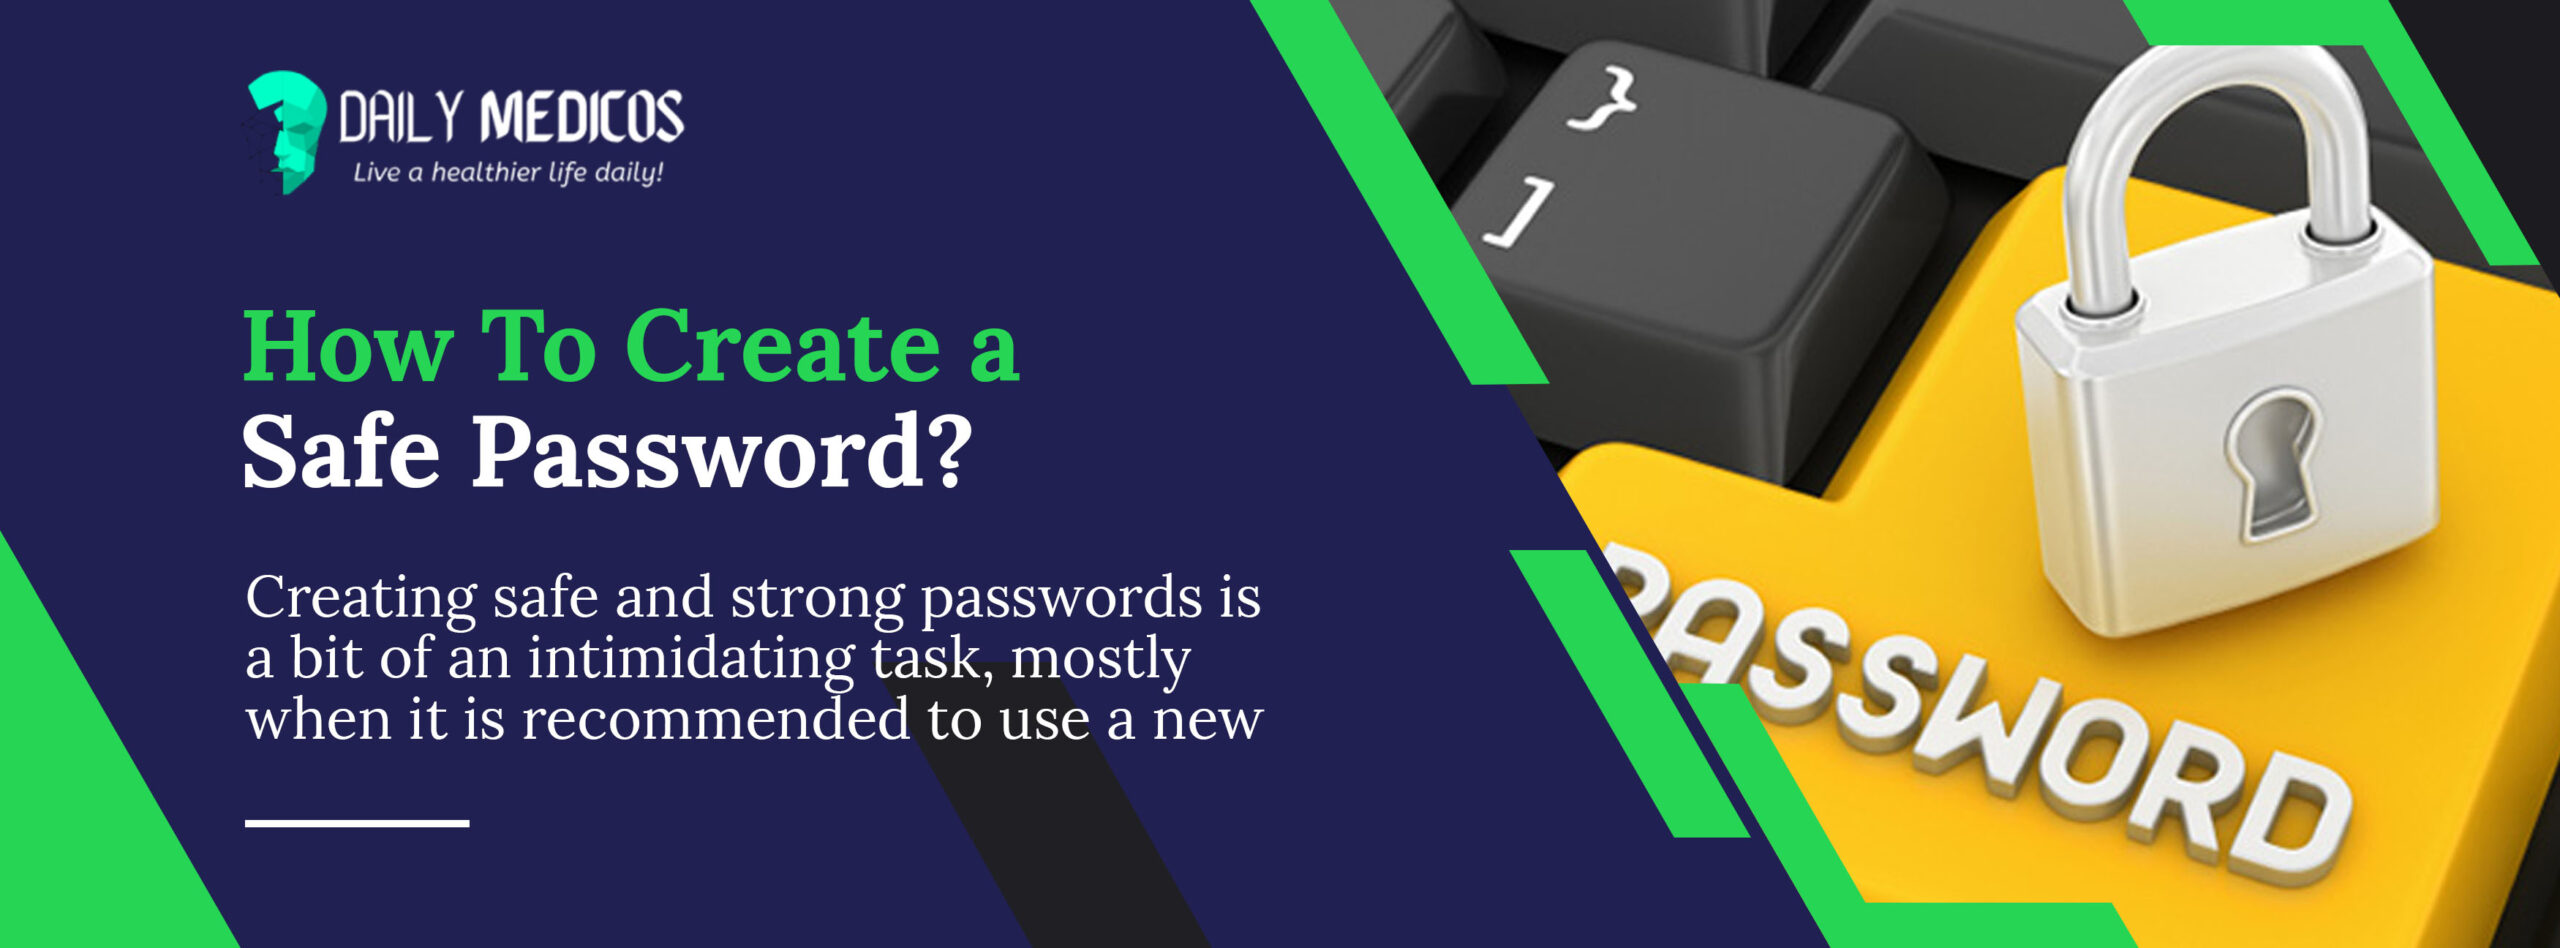 How To Create a Safe Password? Effective Ways to Make Your Password Safe 1 - Daily Medicos